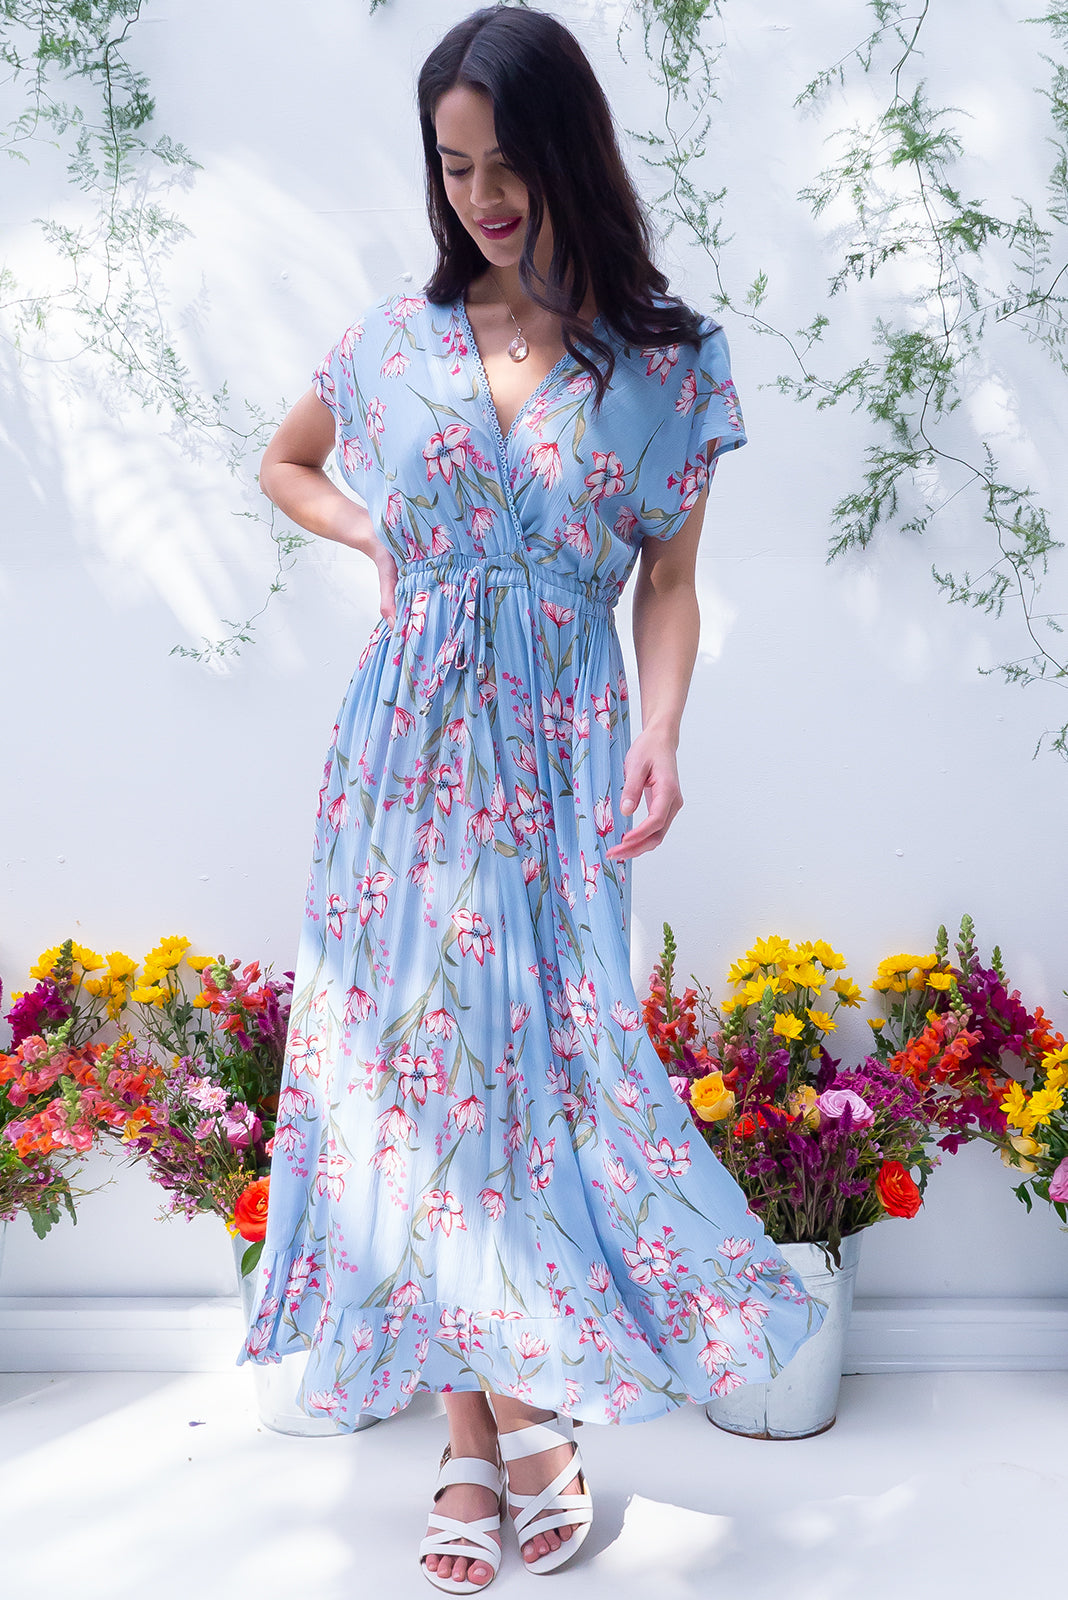 Willow Misty Blue Maxi Dress features V-neck with lace feature, cap sleeves, elasticated waist with decorative tie, frill hem and crinkle textured rayon in sky blue base with floral print.